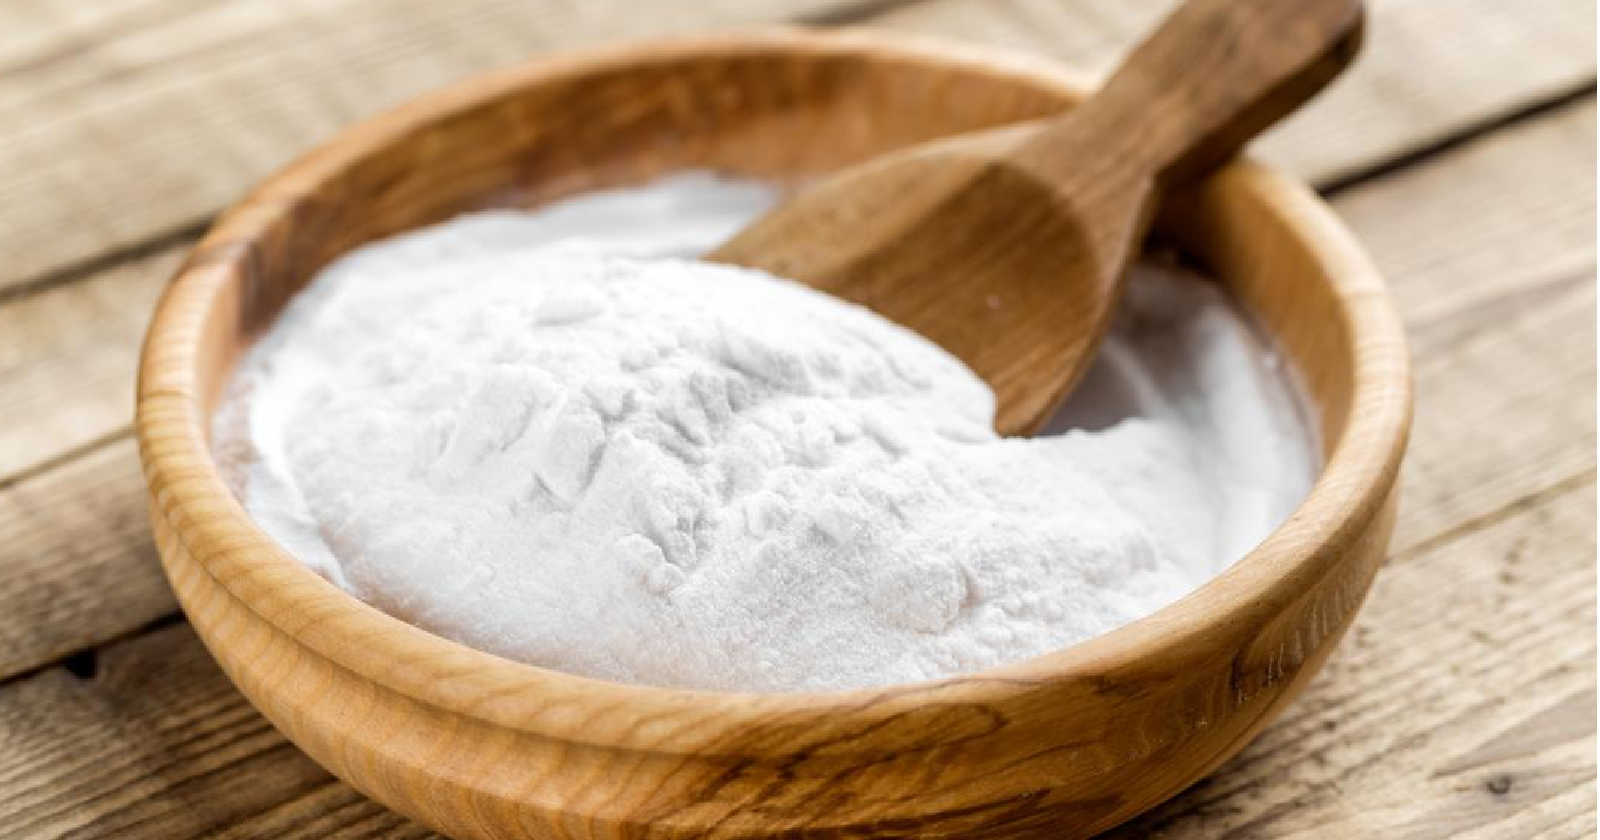 Use-Baking-Soda-for-Gout-Pain-Relief